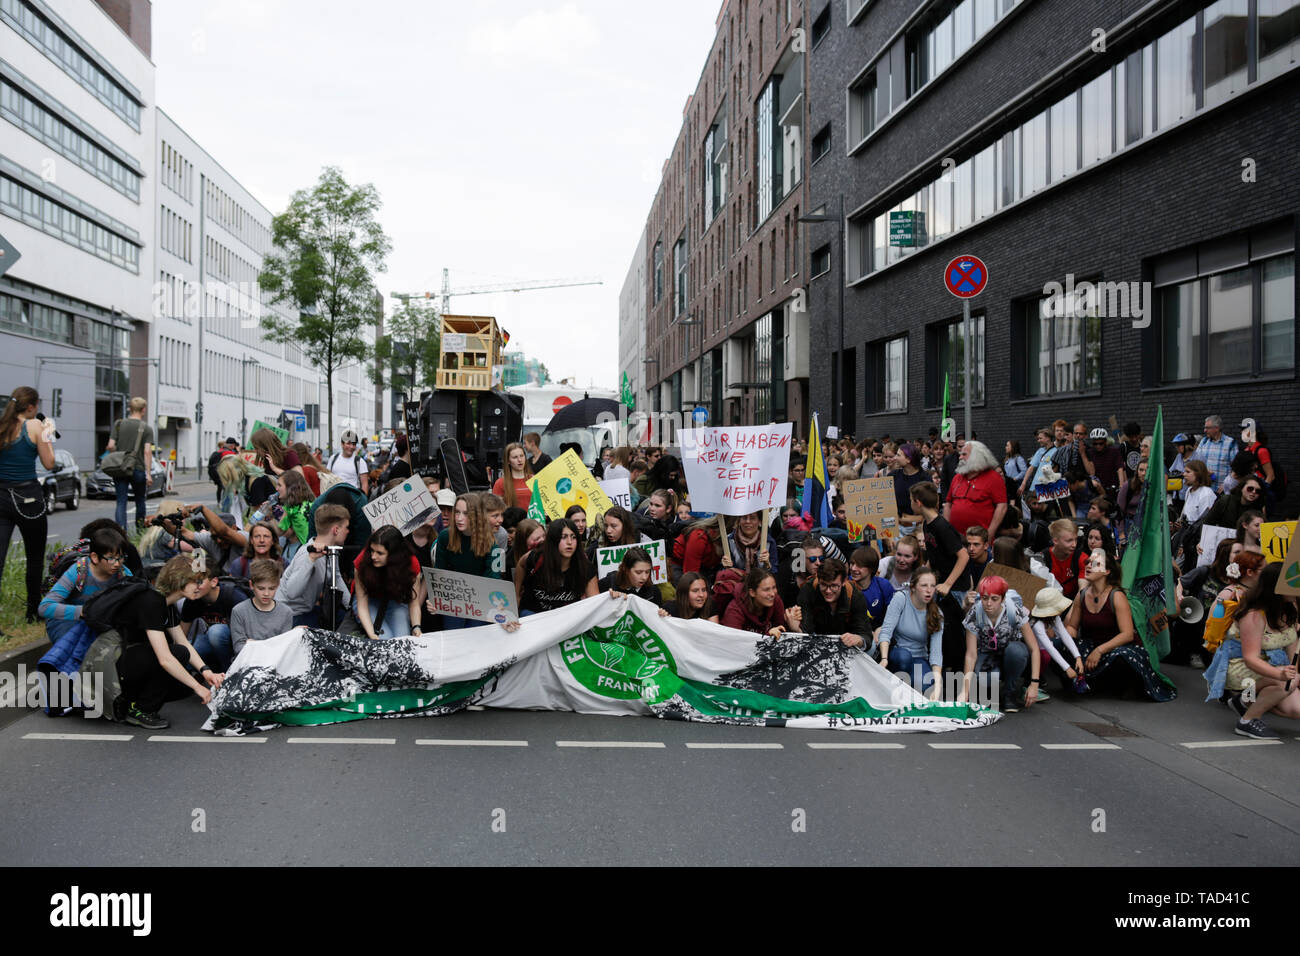 Frankfurt, Germany. 24th May 2019. The protesters stage a short sit-in protest. Around 4,500 young people marched through Frankfurt to the European Central Bank, to protest against the climate change and for the introduction of measurements against it. The protest took place as part of an Europe wide climate strike, two days ahead of the 2019 European elections. - Stock Image